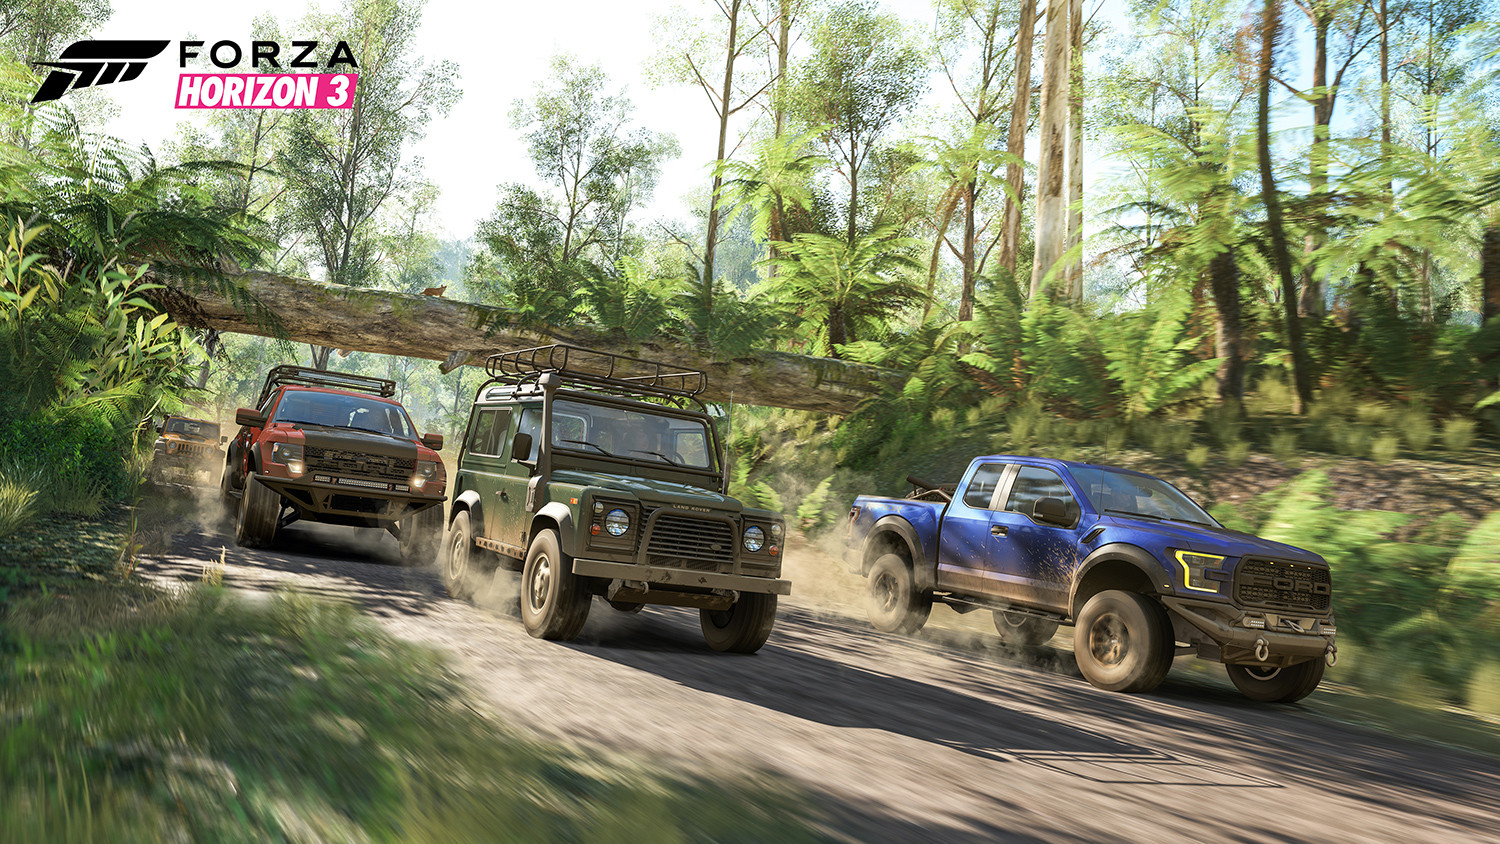 Forza Horizon 3 is at its best when it lets your friends take the